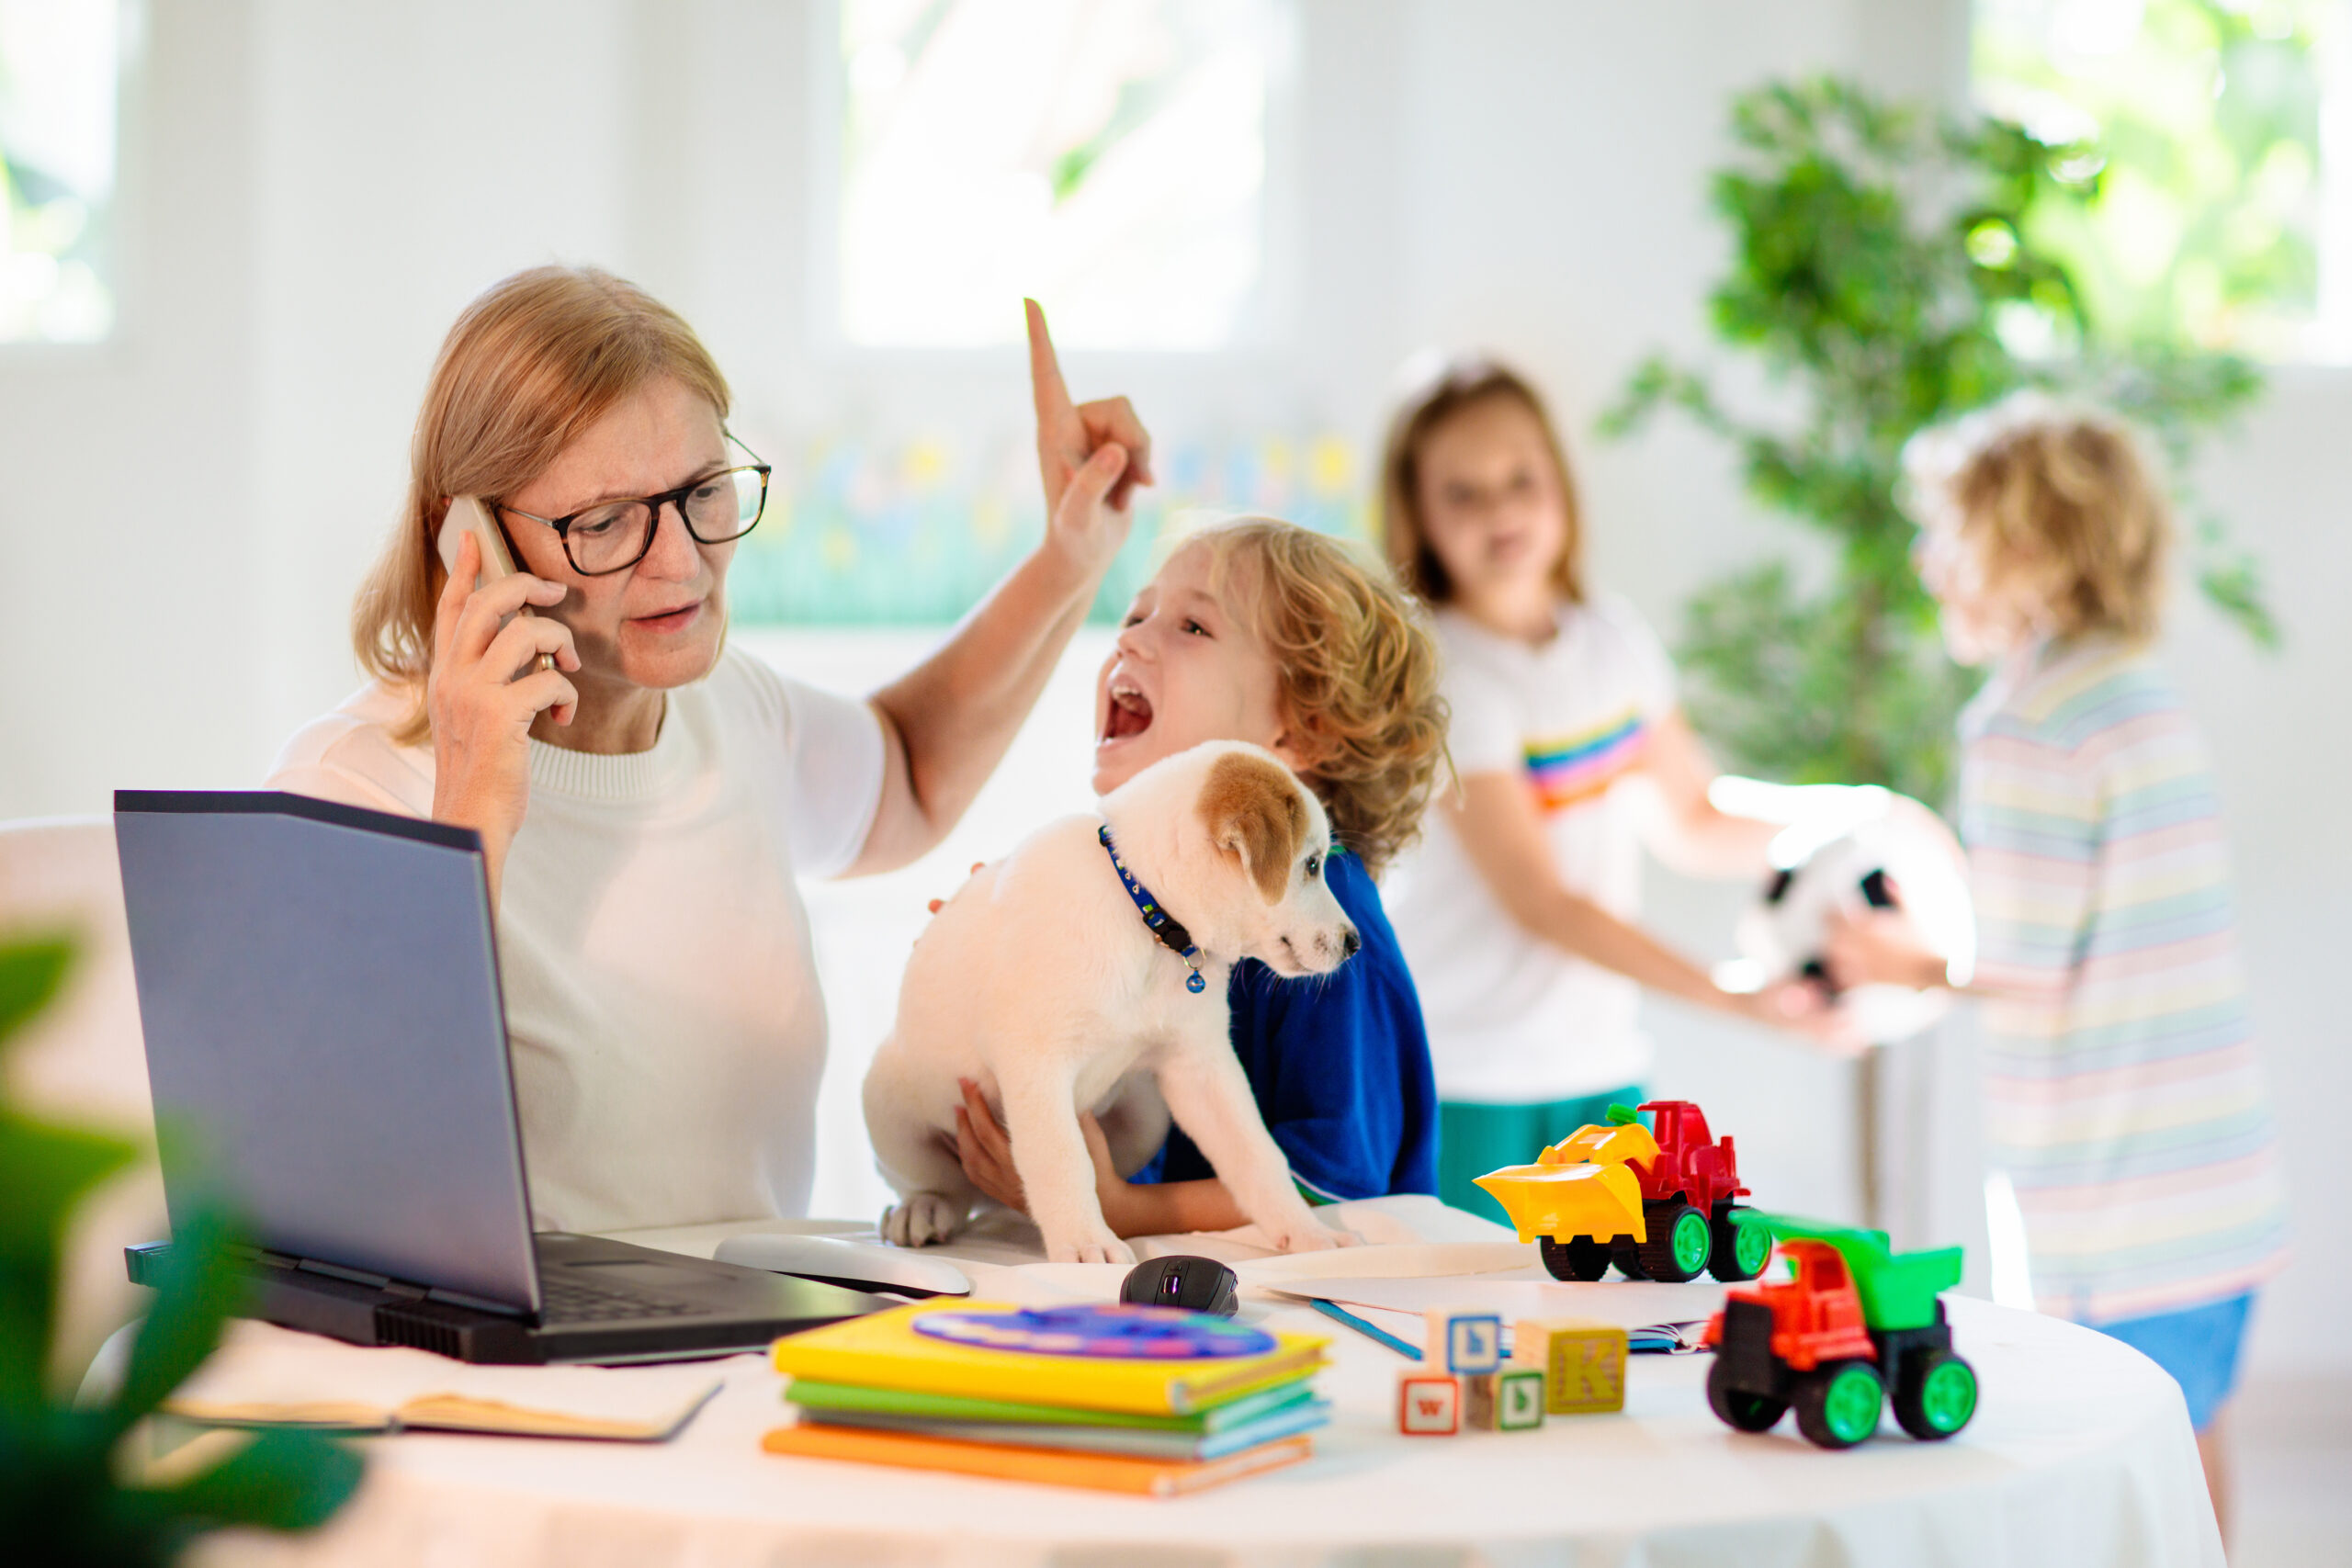 alternative to on-line learning that works with home environments